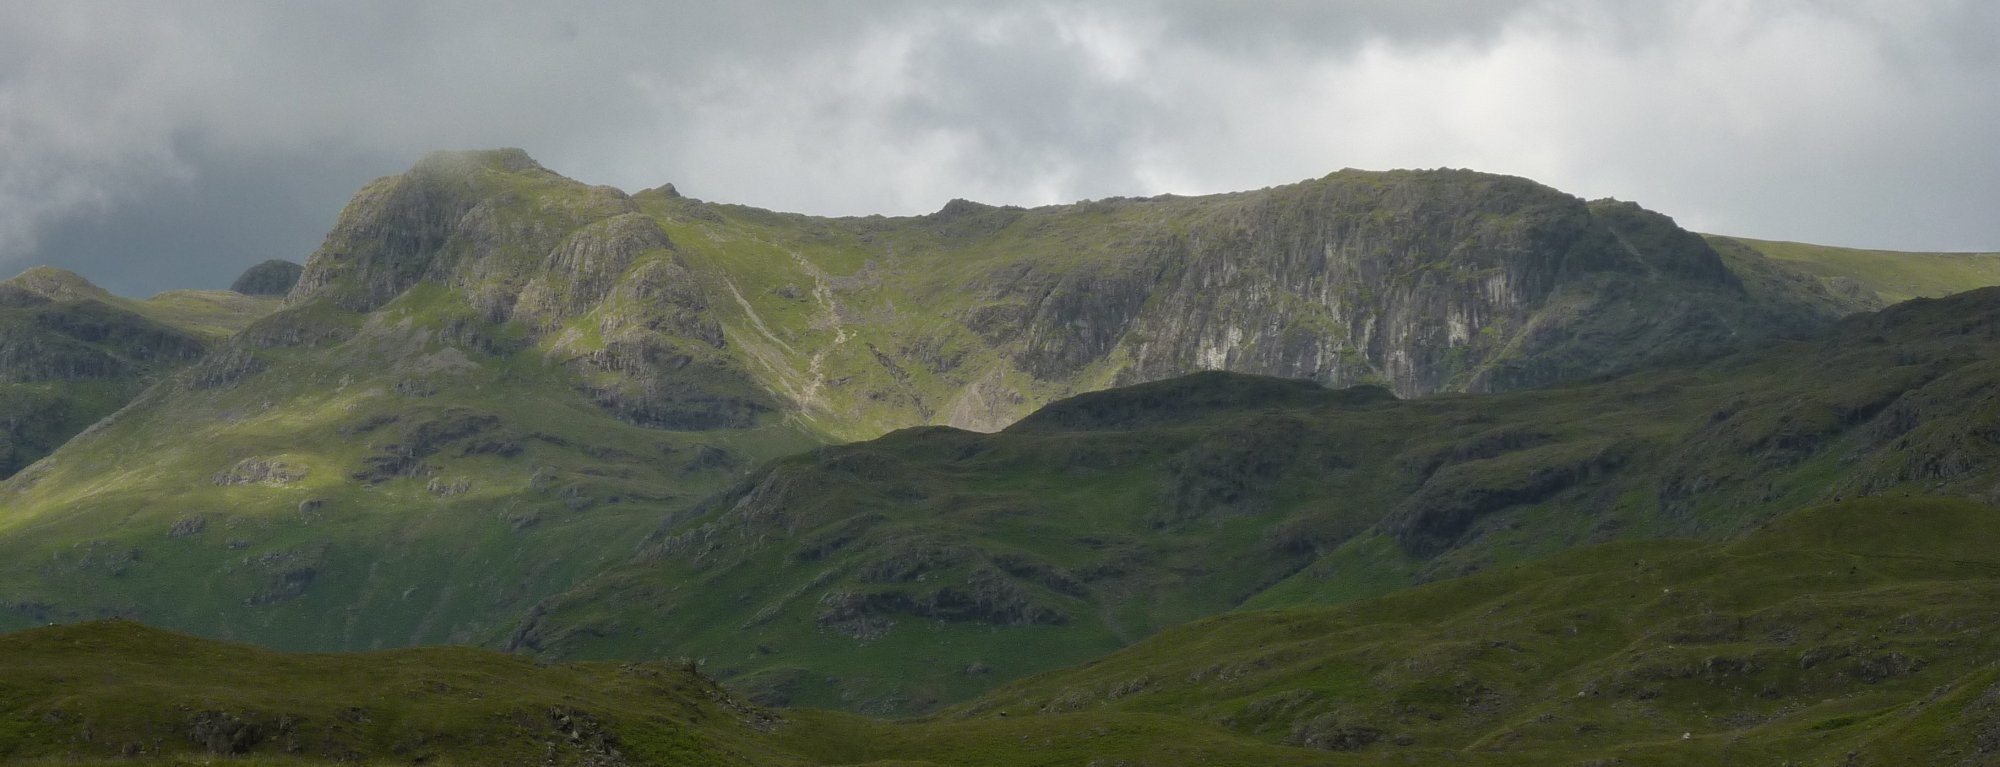 Langdale Pikes in the distance, across the lumpy stuff